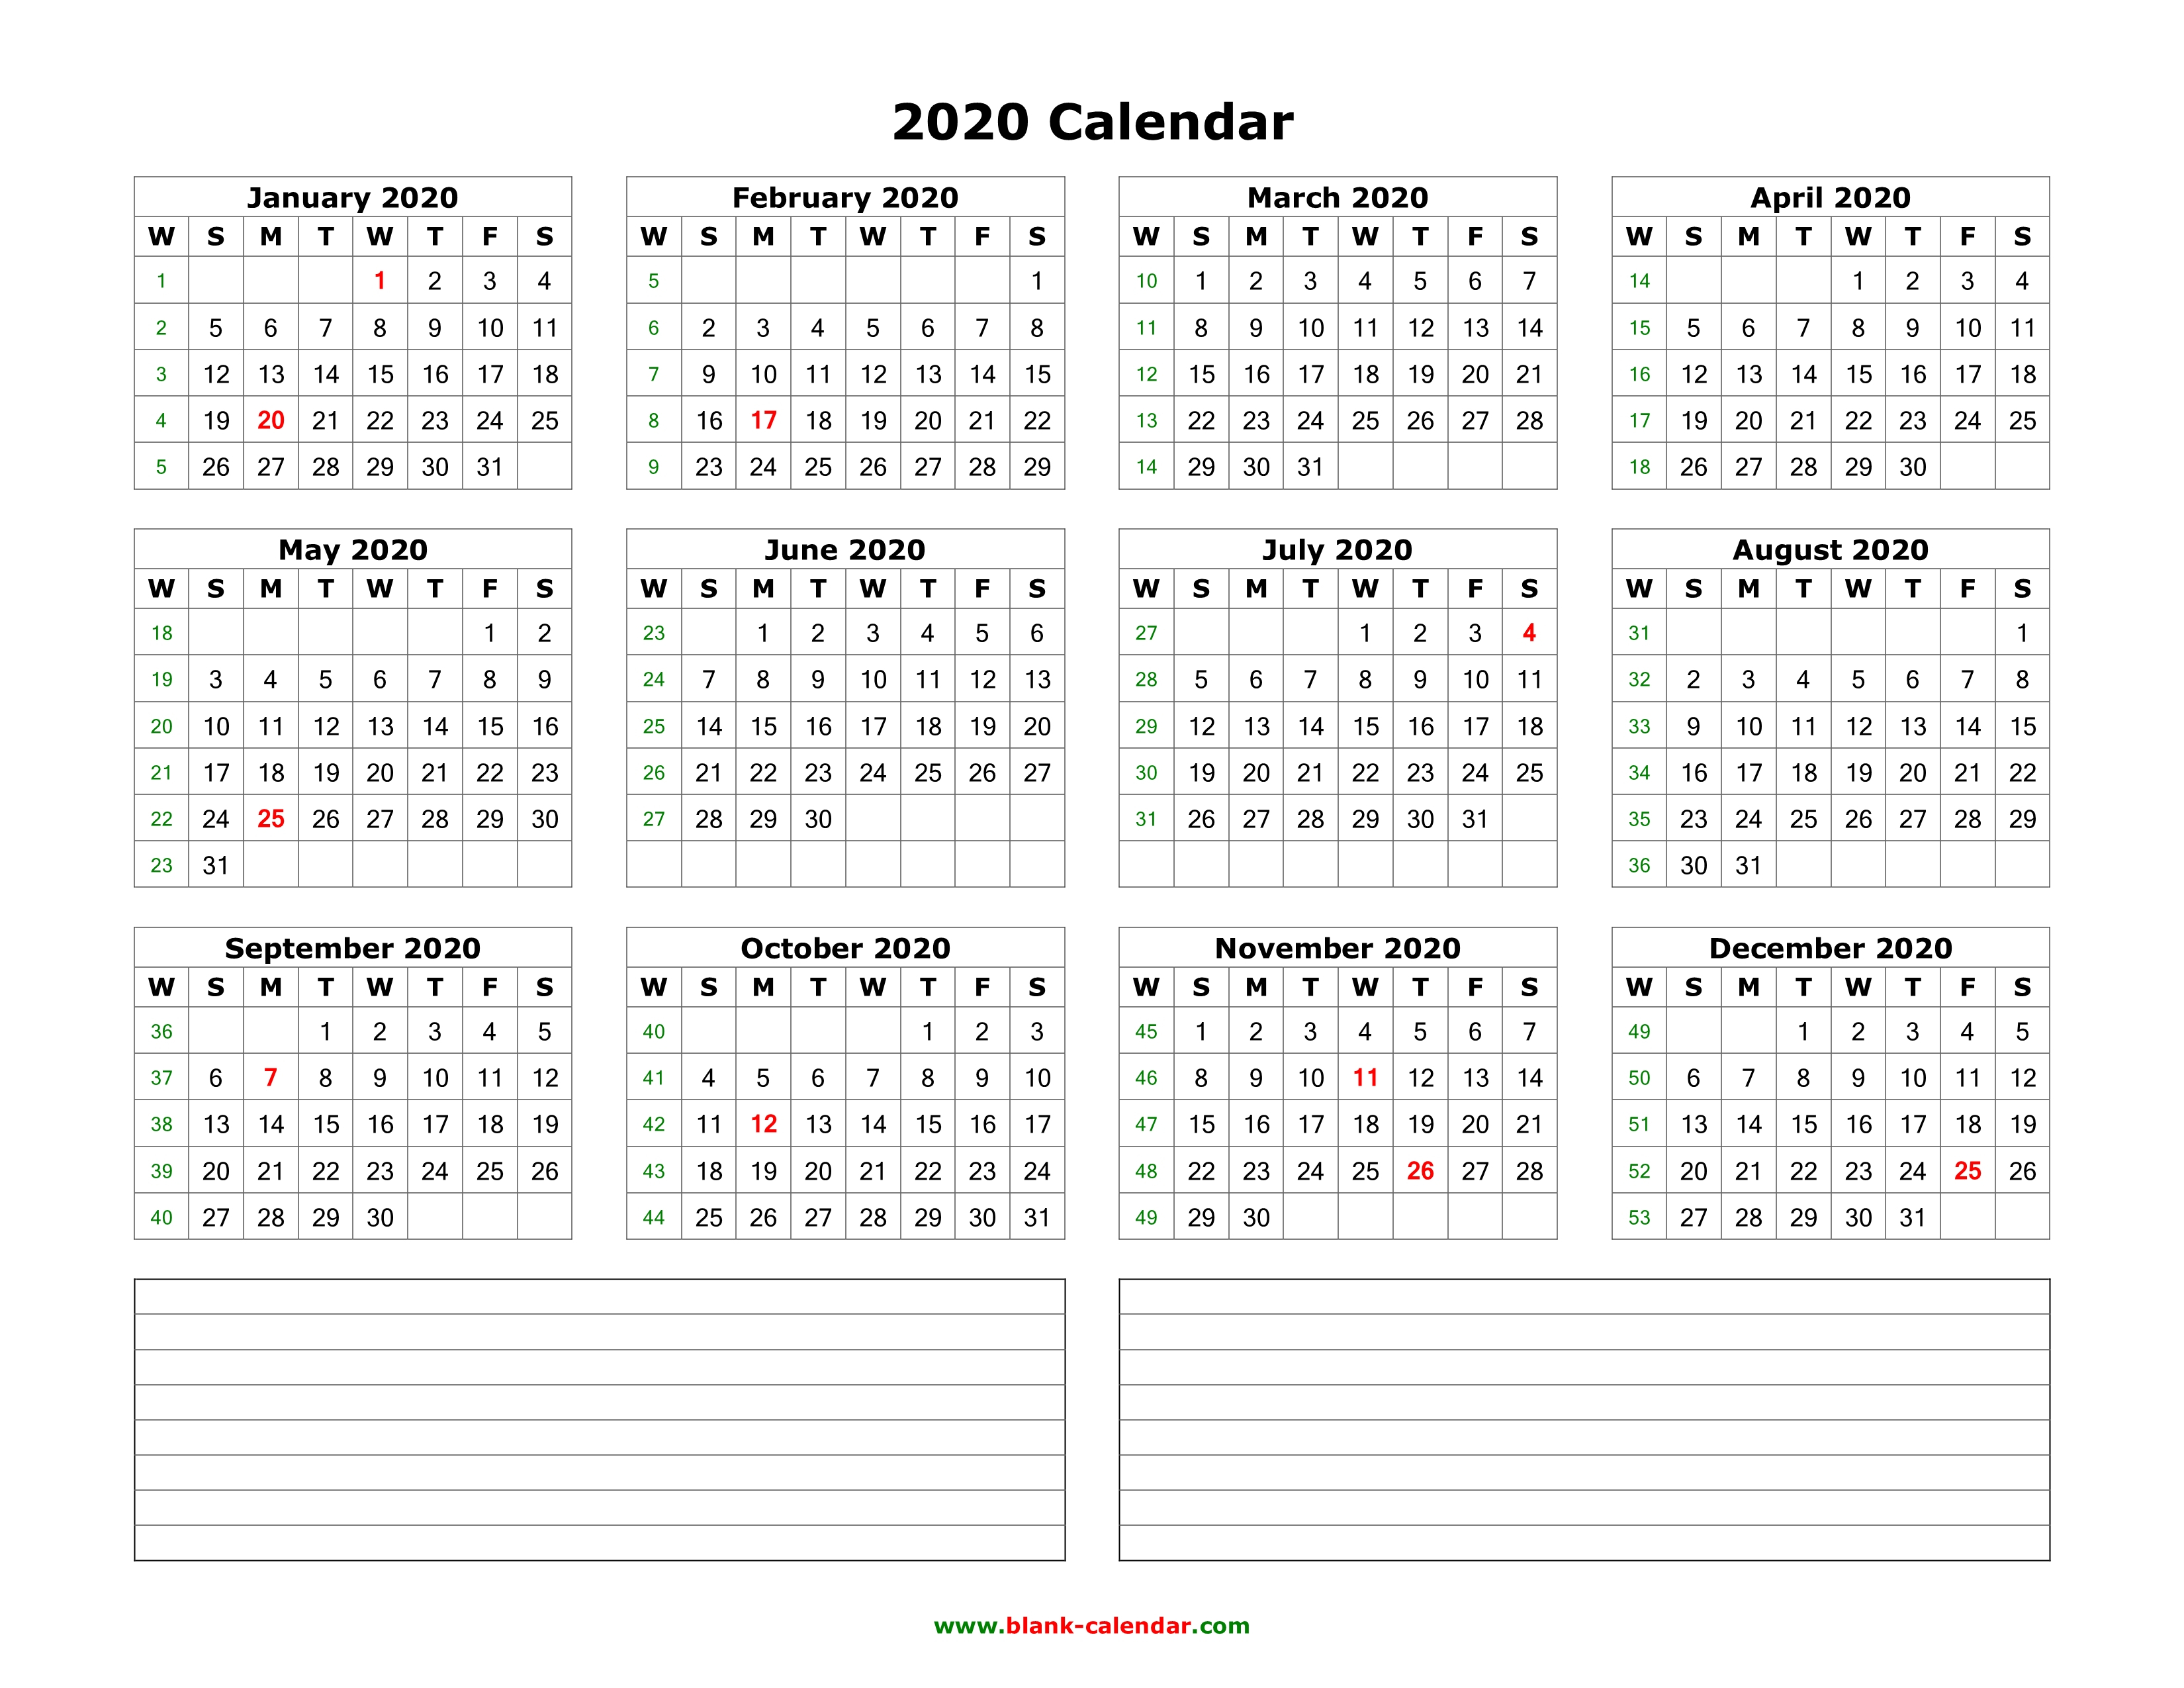 Download Blank Calendar 2020 With Space For Notes (12 Months On One in 2020 Calander To Write On